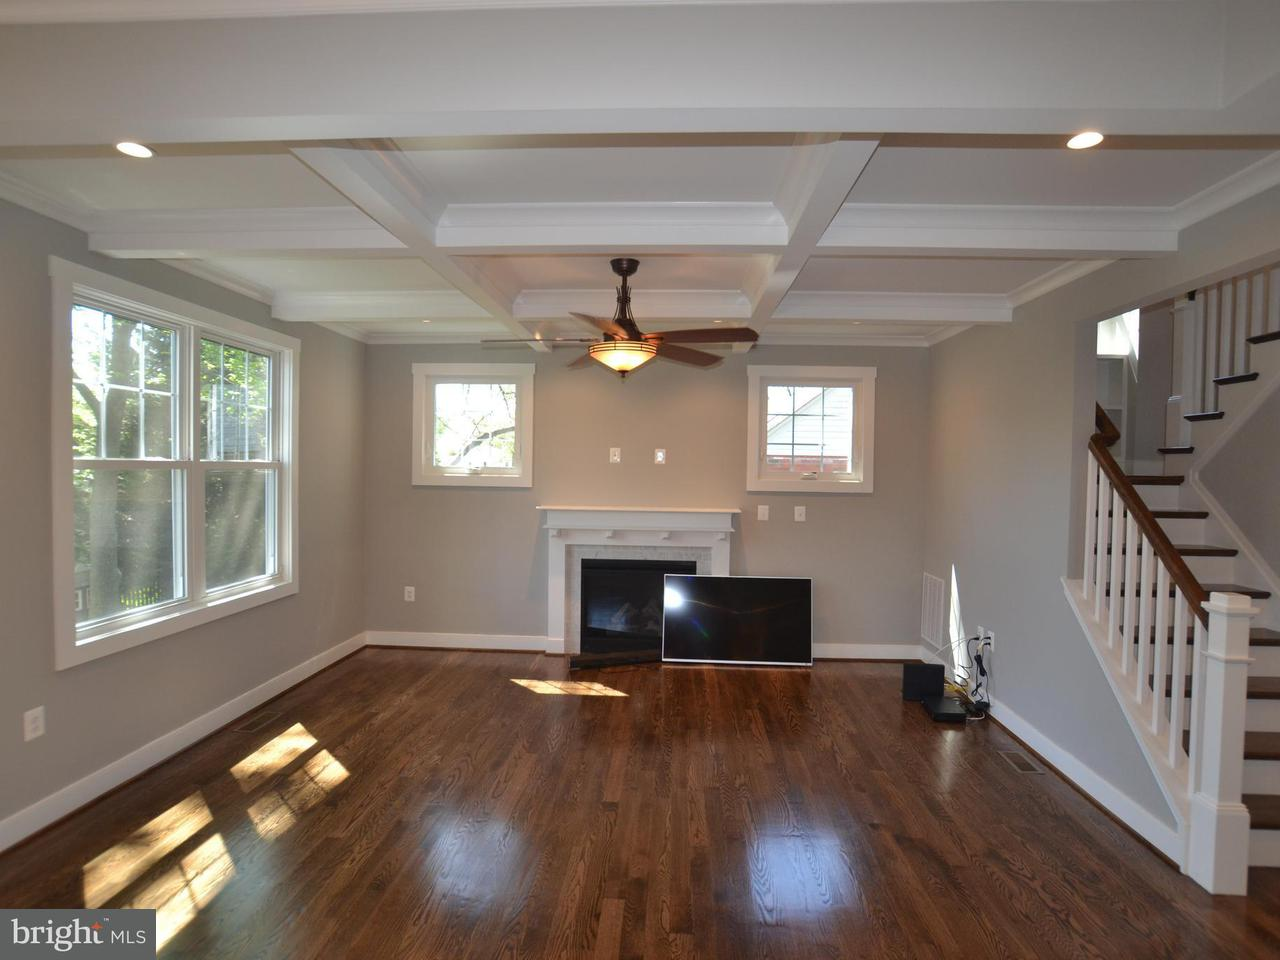 Additional photo for property listing at 206 West Marshall Street 206 West Marshall Street Falls Church, Virginia 22046 Estados Unidos